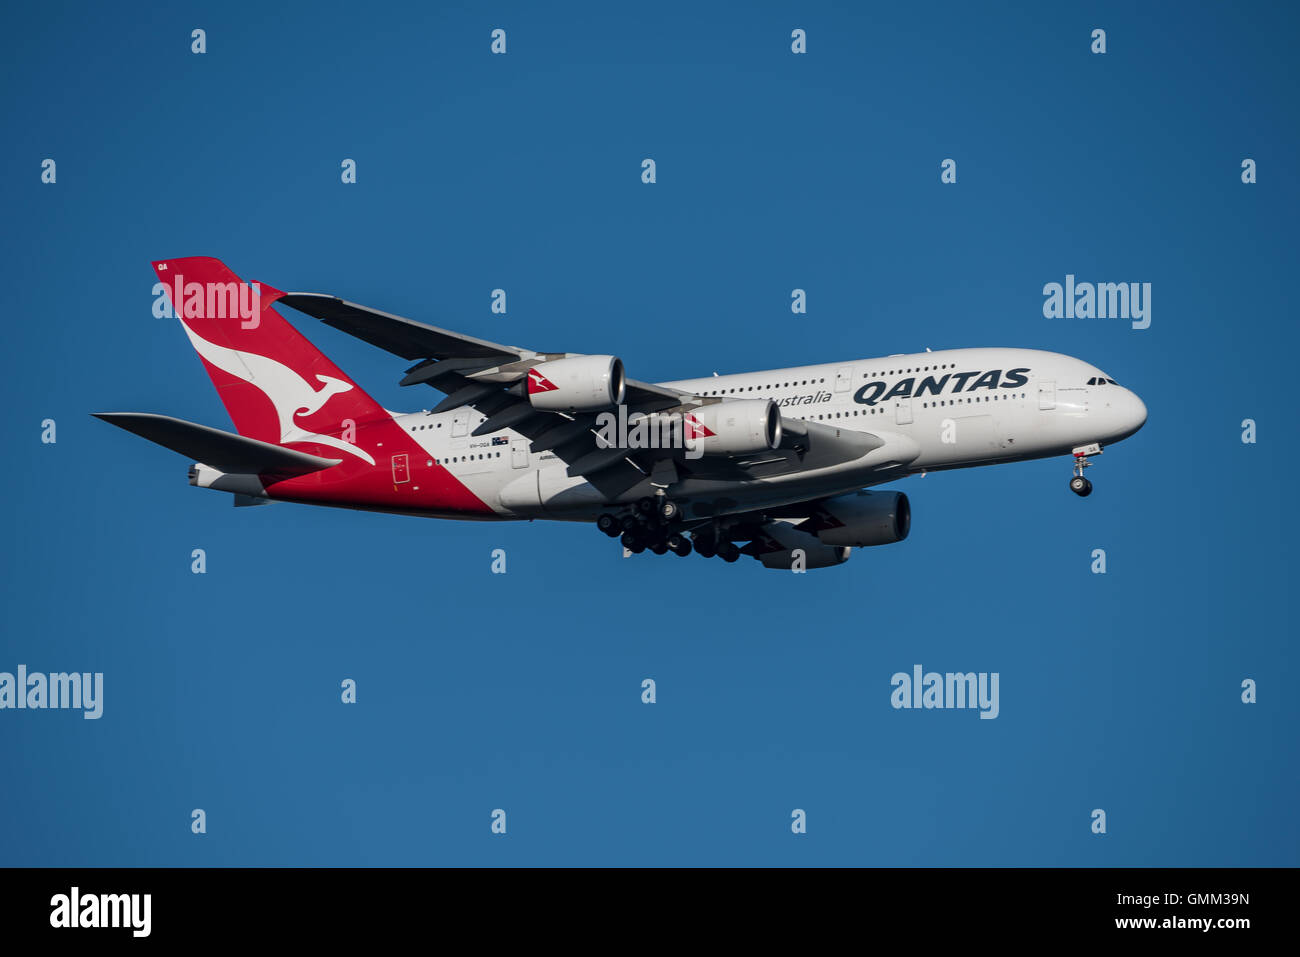 Qantas Airbus A-380 on Final approach to Sydney Airport on Saturday 20 August 2016 - Stock Image